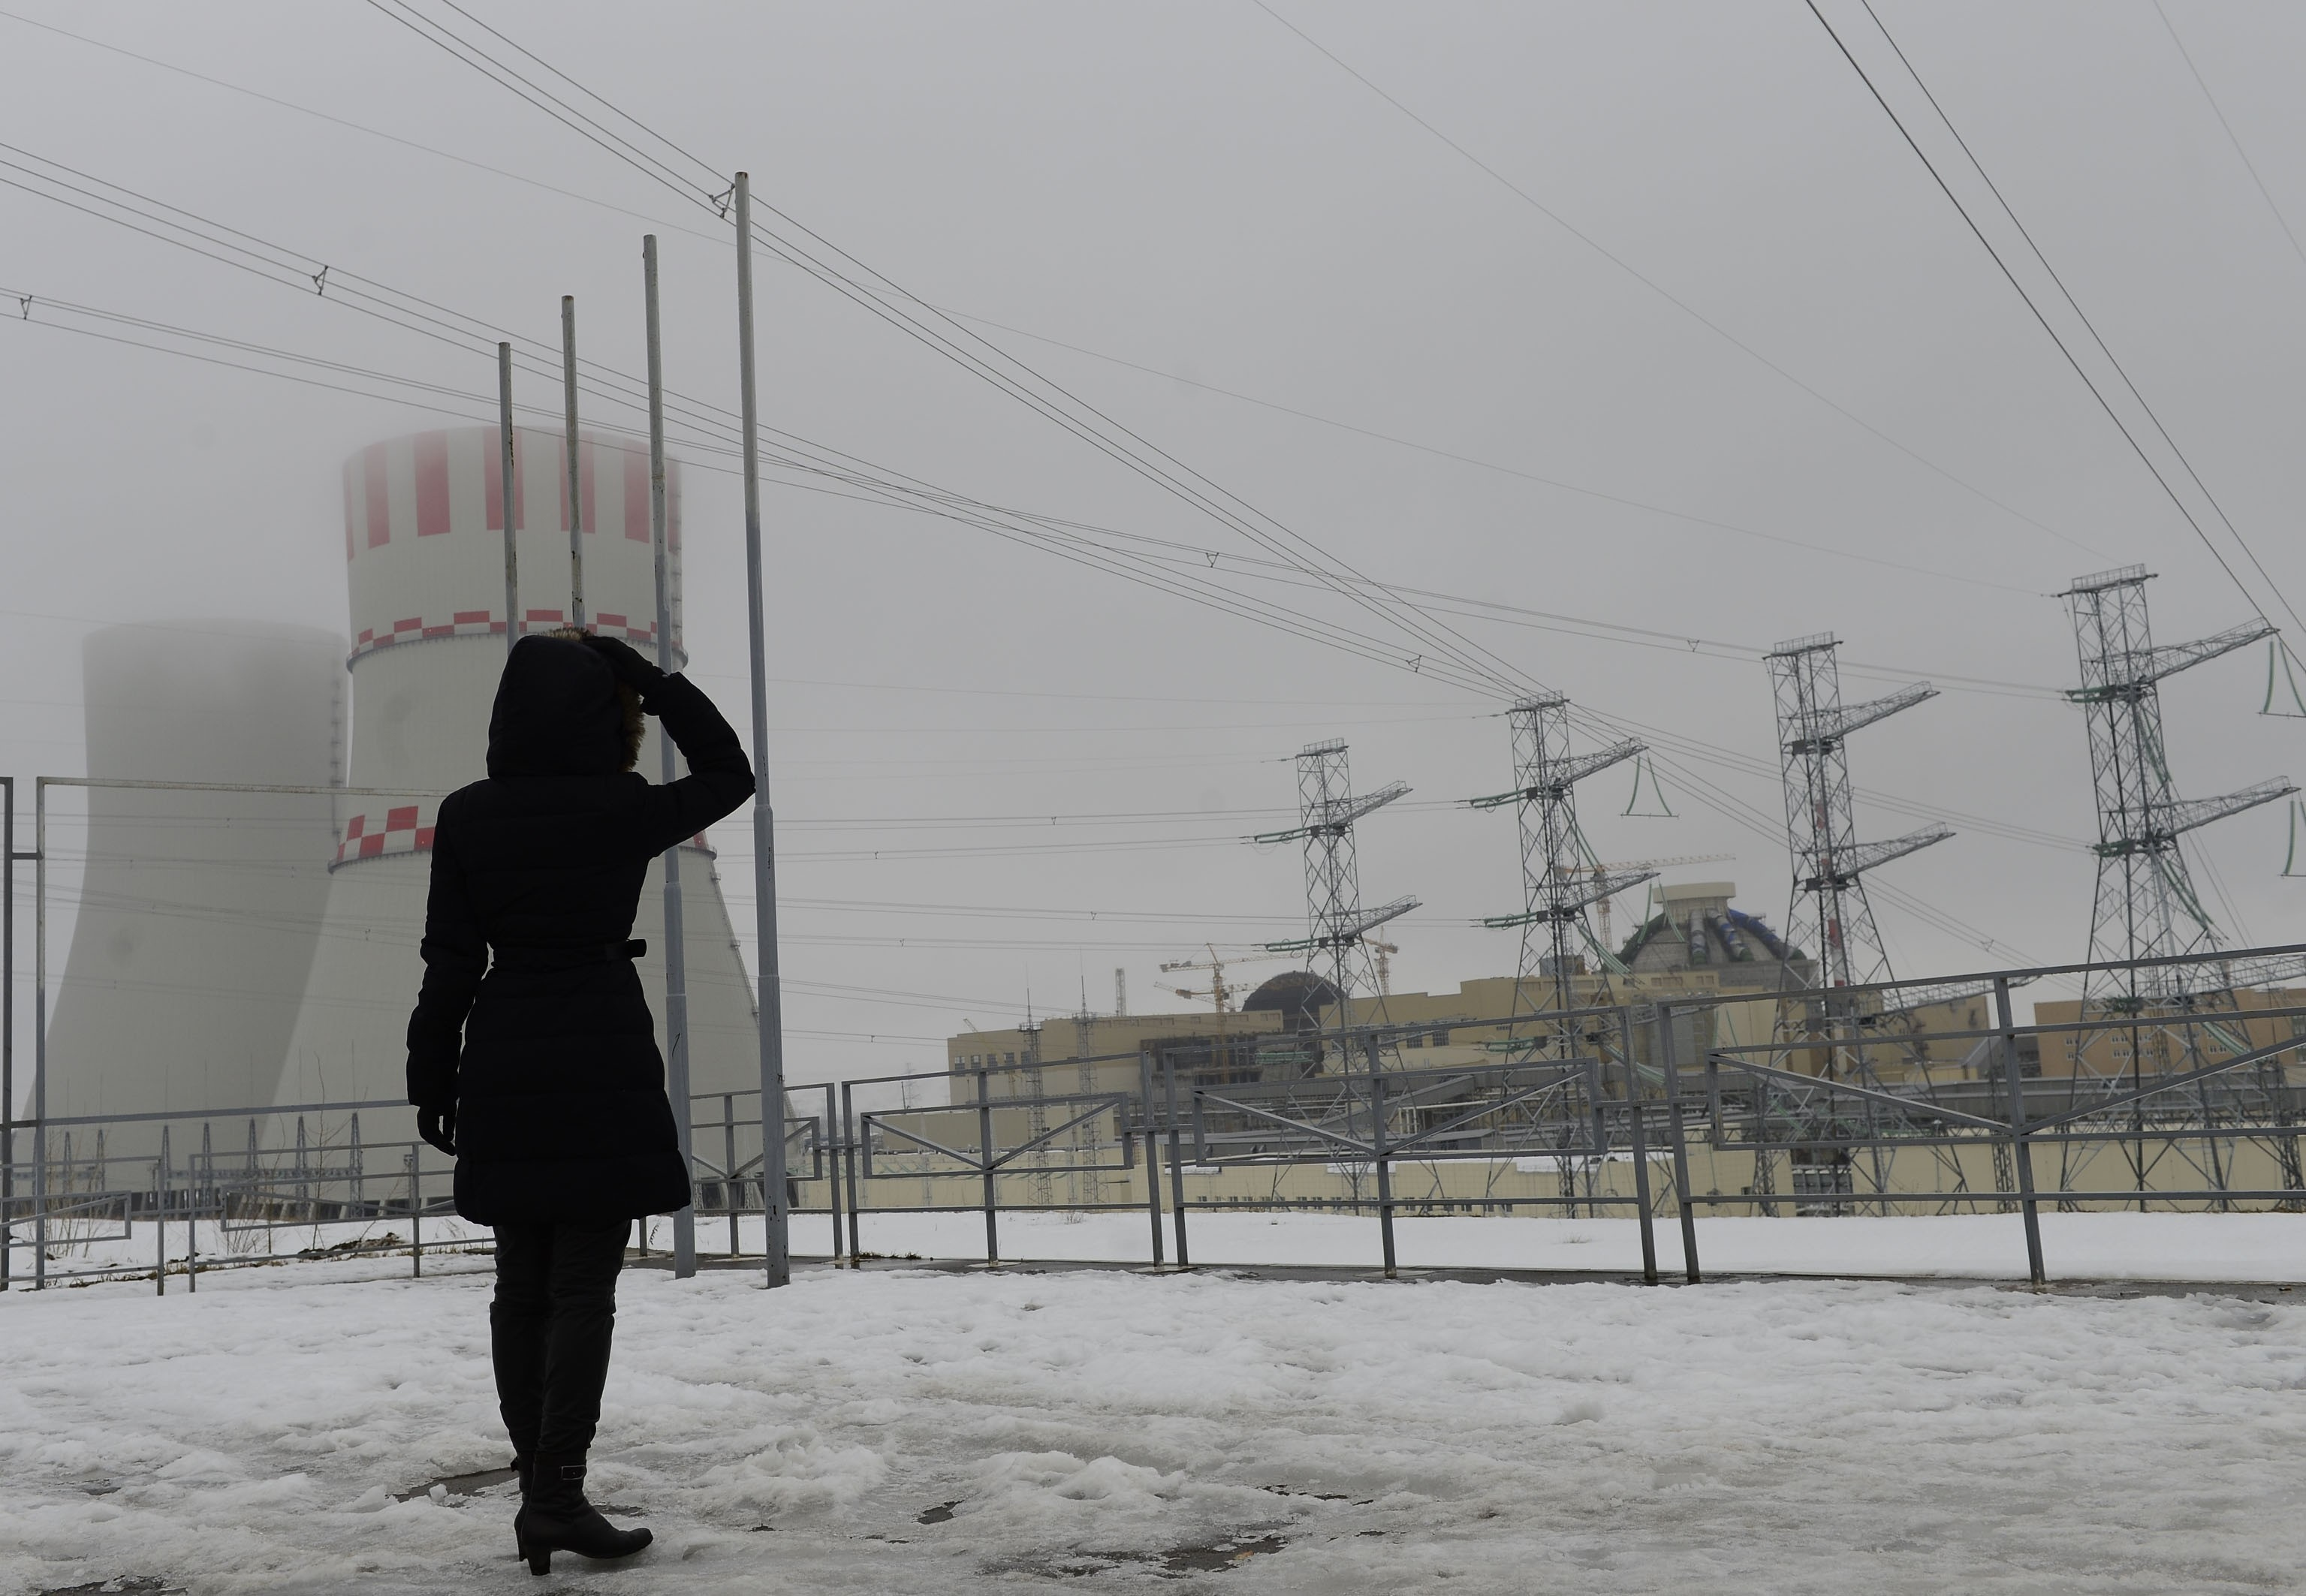 Russian Novovoronezh plant, sister project to Turkish first nuclear power plant